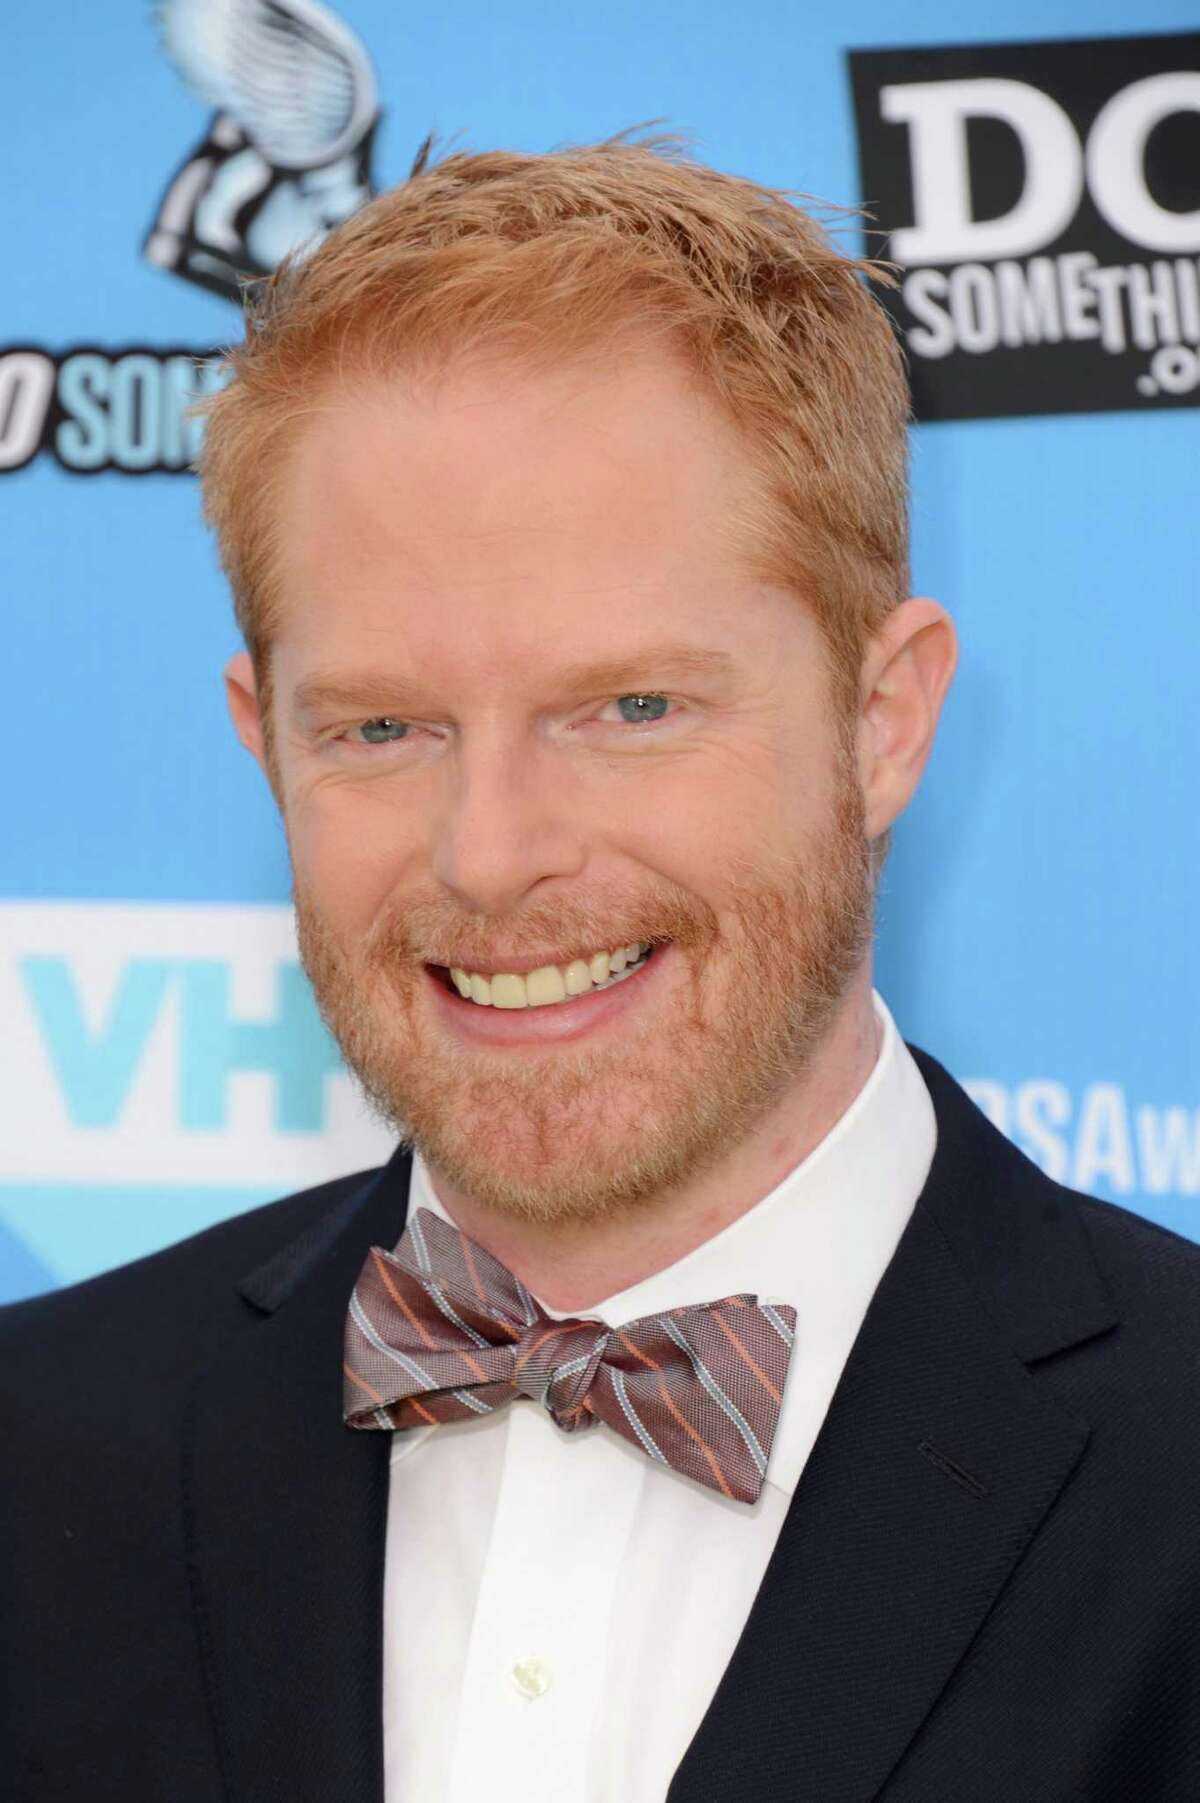 Jesse Tyler Ferguson arrives at the Do Something Awards at the Avalon on Wednesday, July 31, 2013, in Los Angeles. (Photo by Jordan Strauss/Invision/AP)